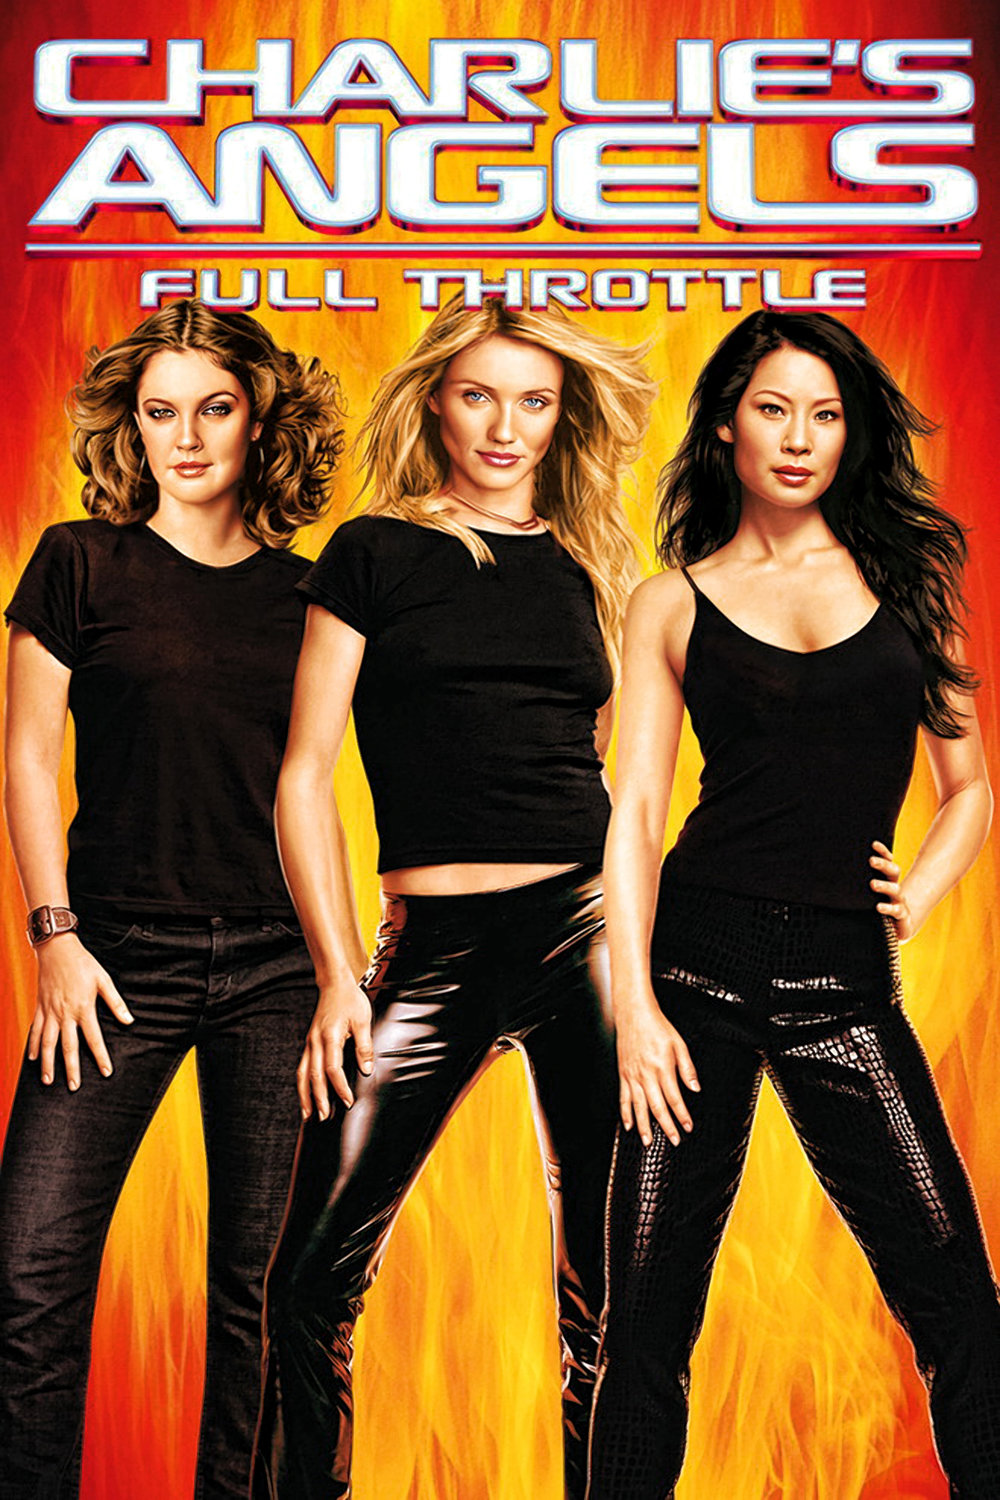 Charlie's Angels Full Throttle 2.jpg